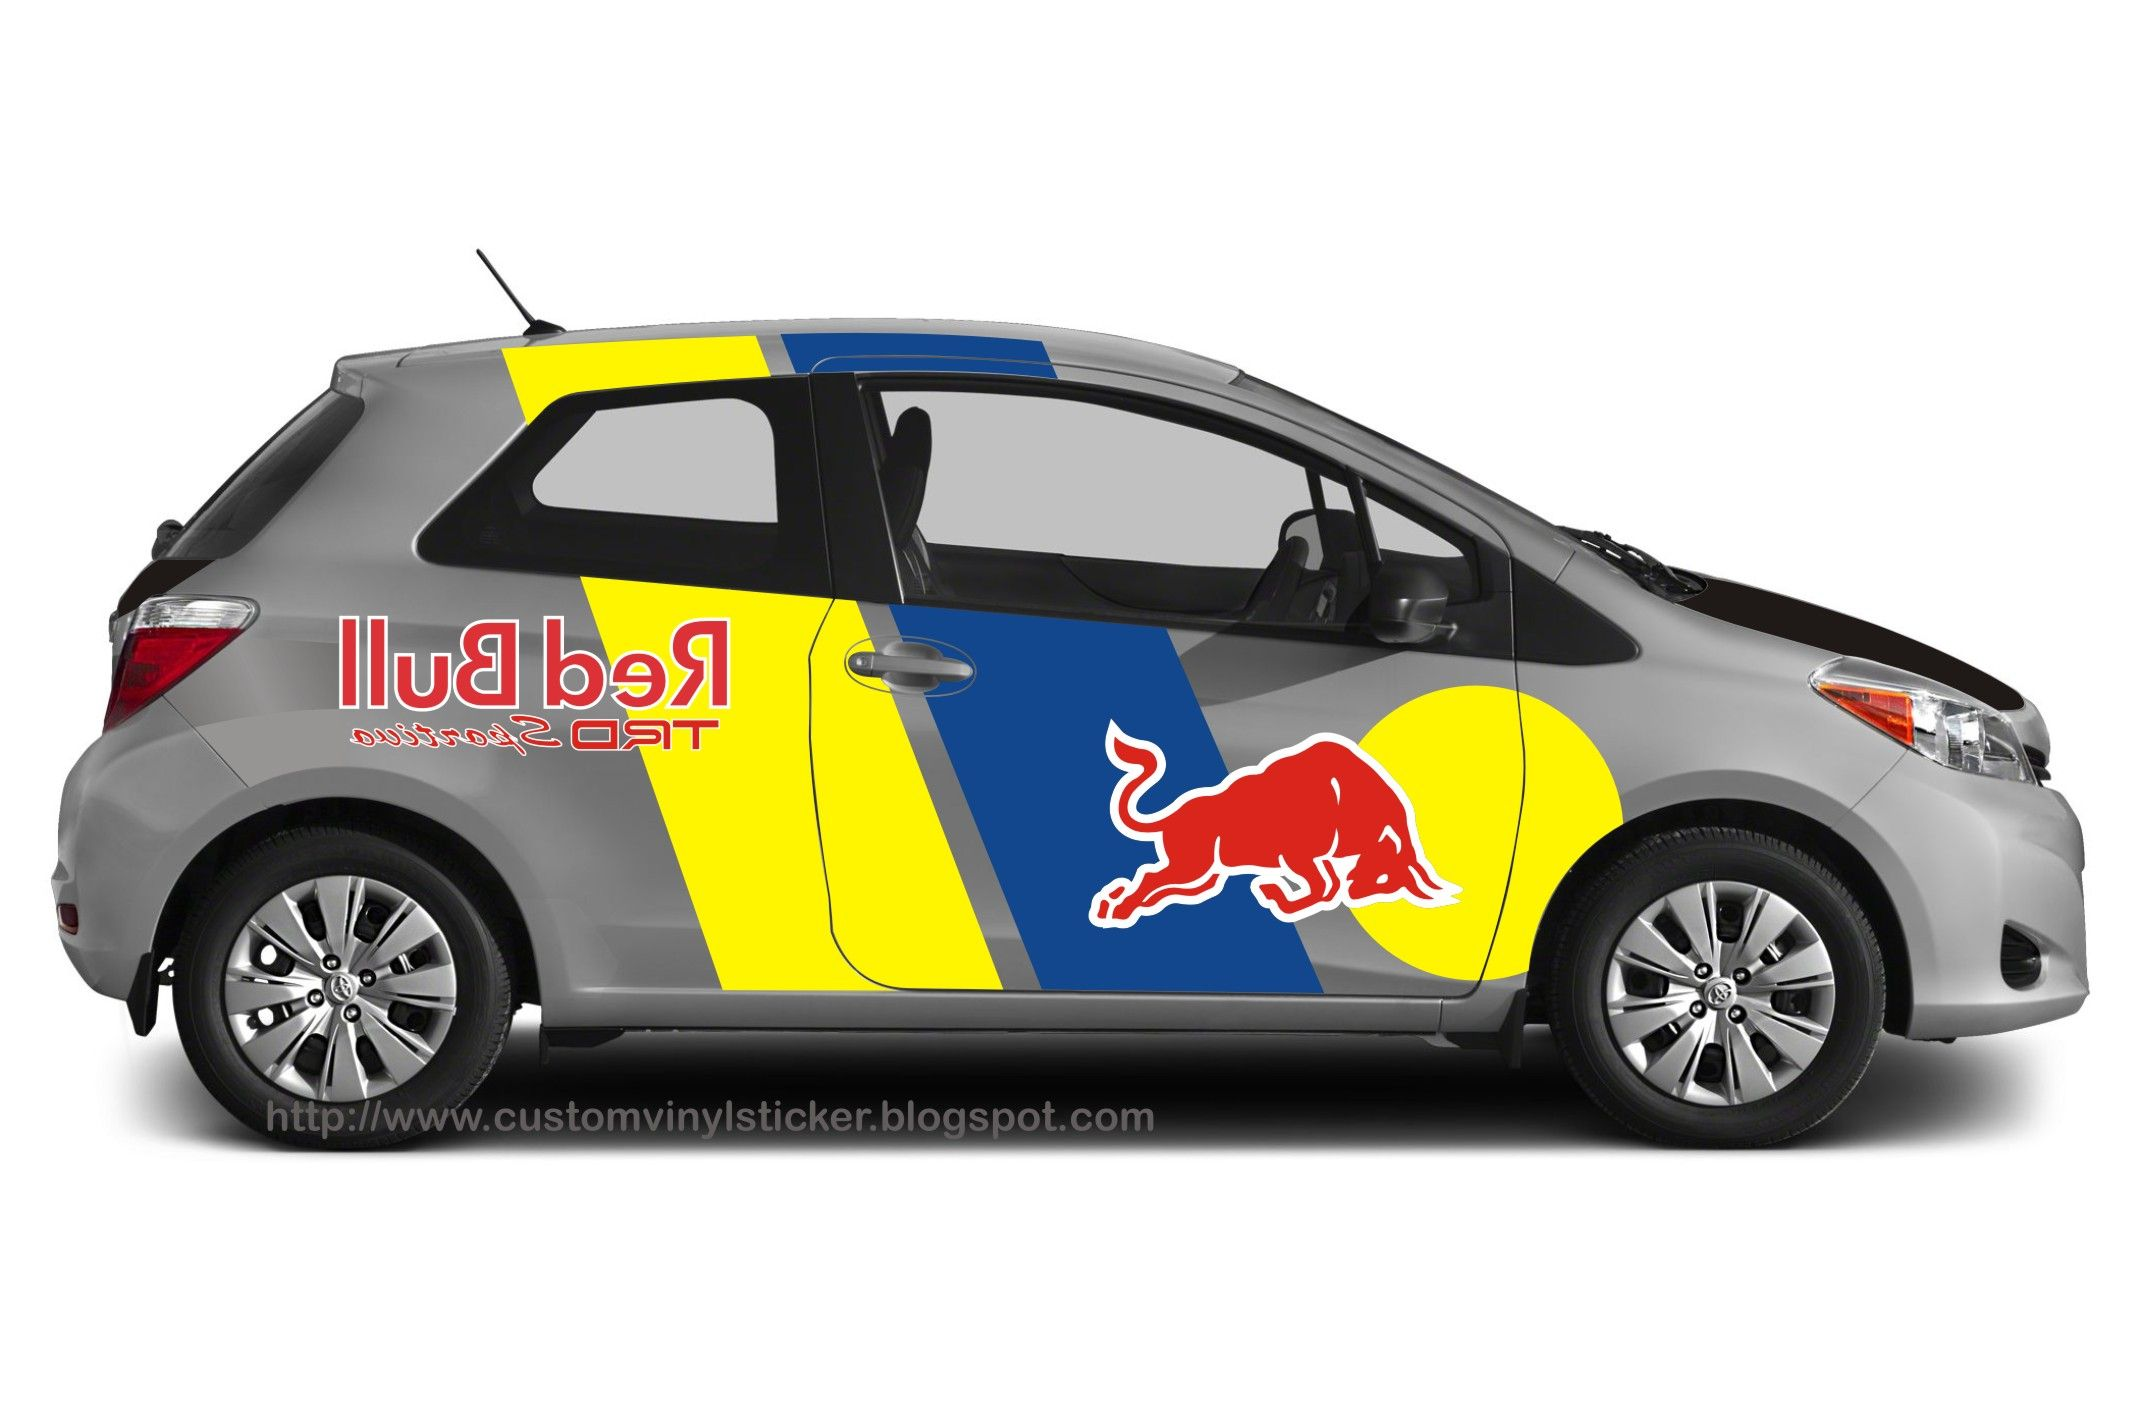 Toyota car sticker design - Toyota Yaris Red Bull Trd Sportivo Sticker Concept By Stickrenz